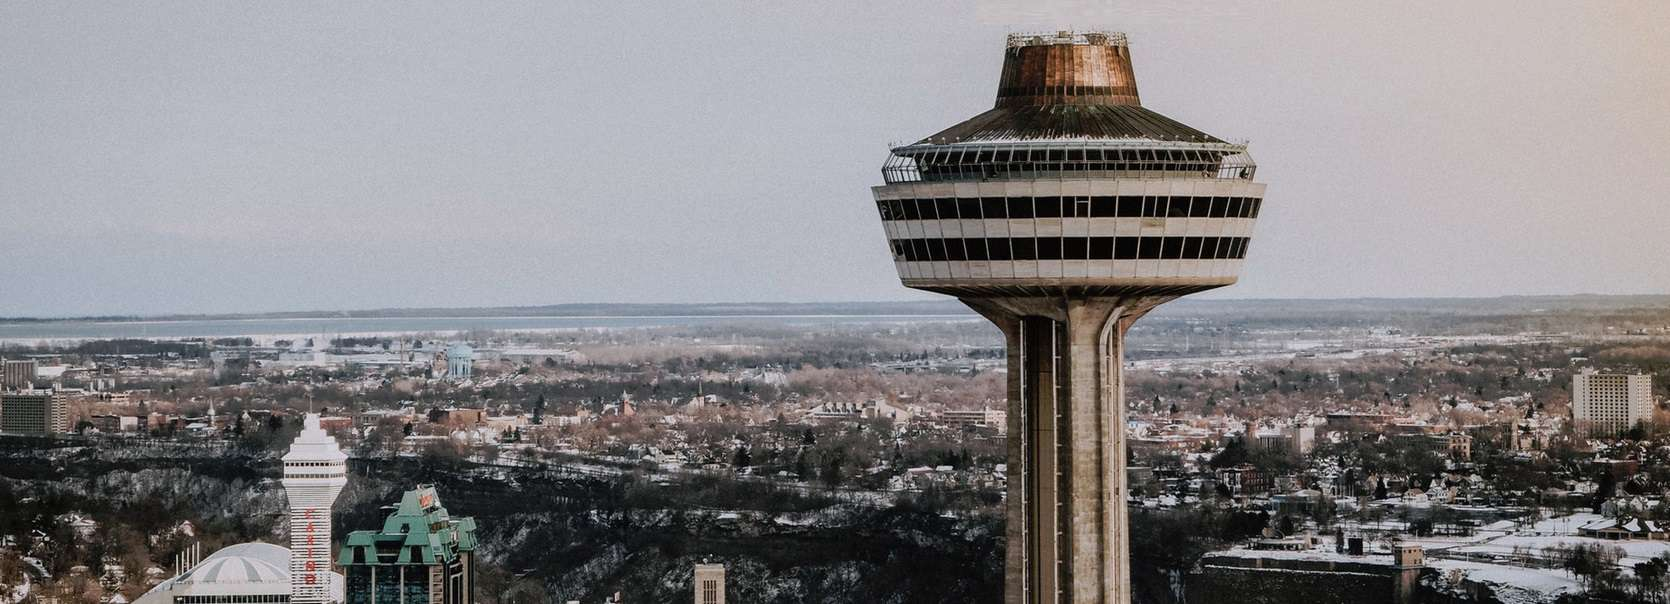 Skylon Tower in Niagara Falls